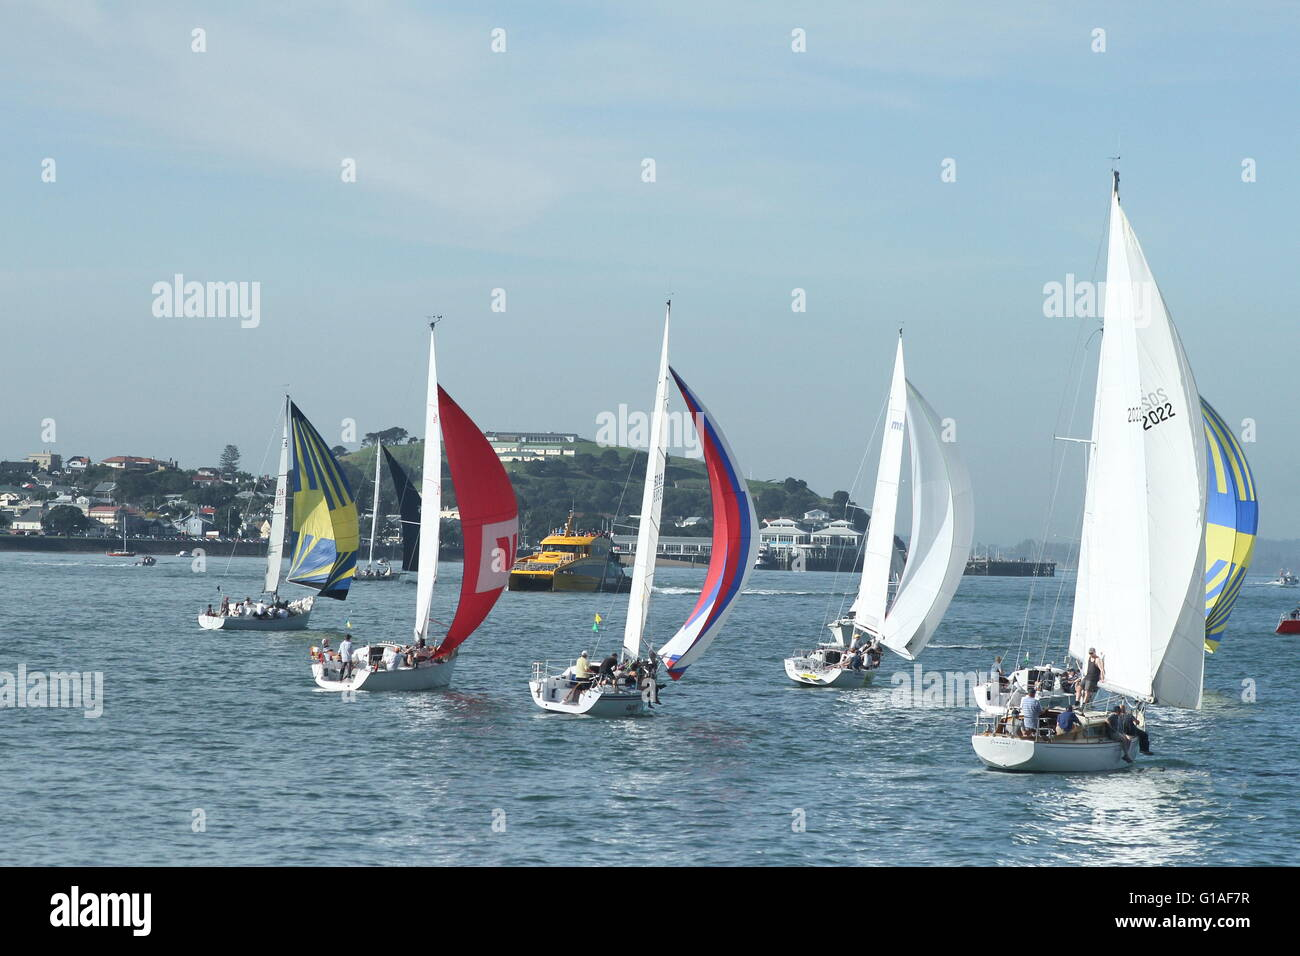 Yacht race at the Hauraki Gulf, Auckland, New Zealand on a calm day with a slight breeze - Stock Image